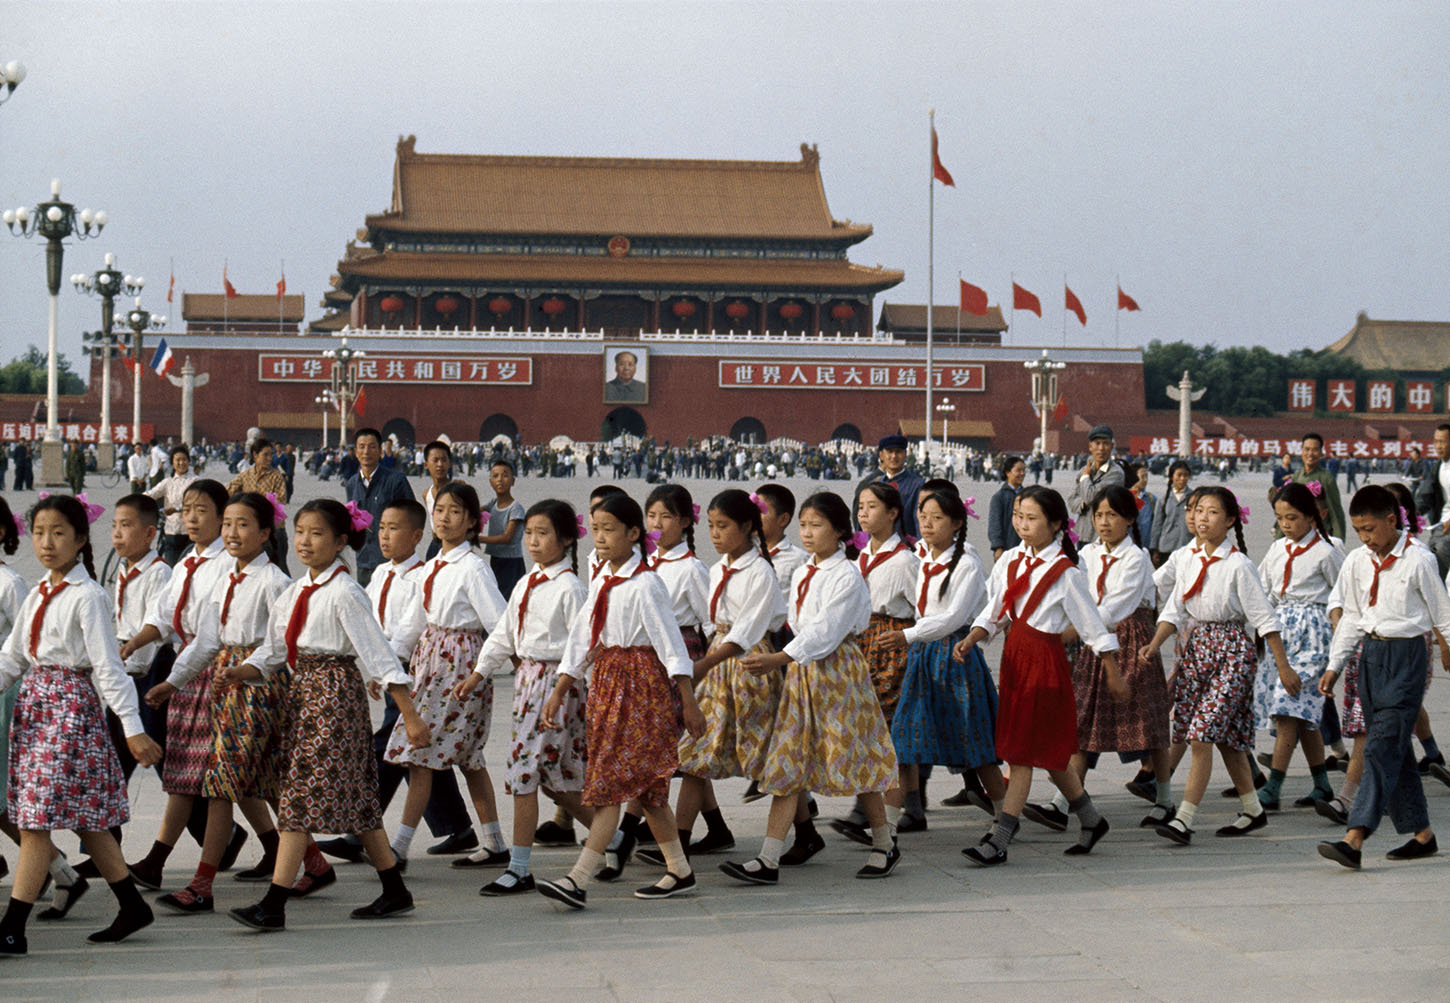 Tiananmen Square. Beijing, China. 1973.